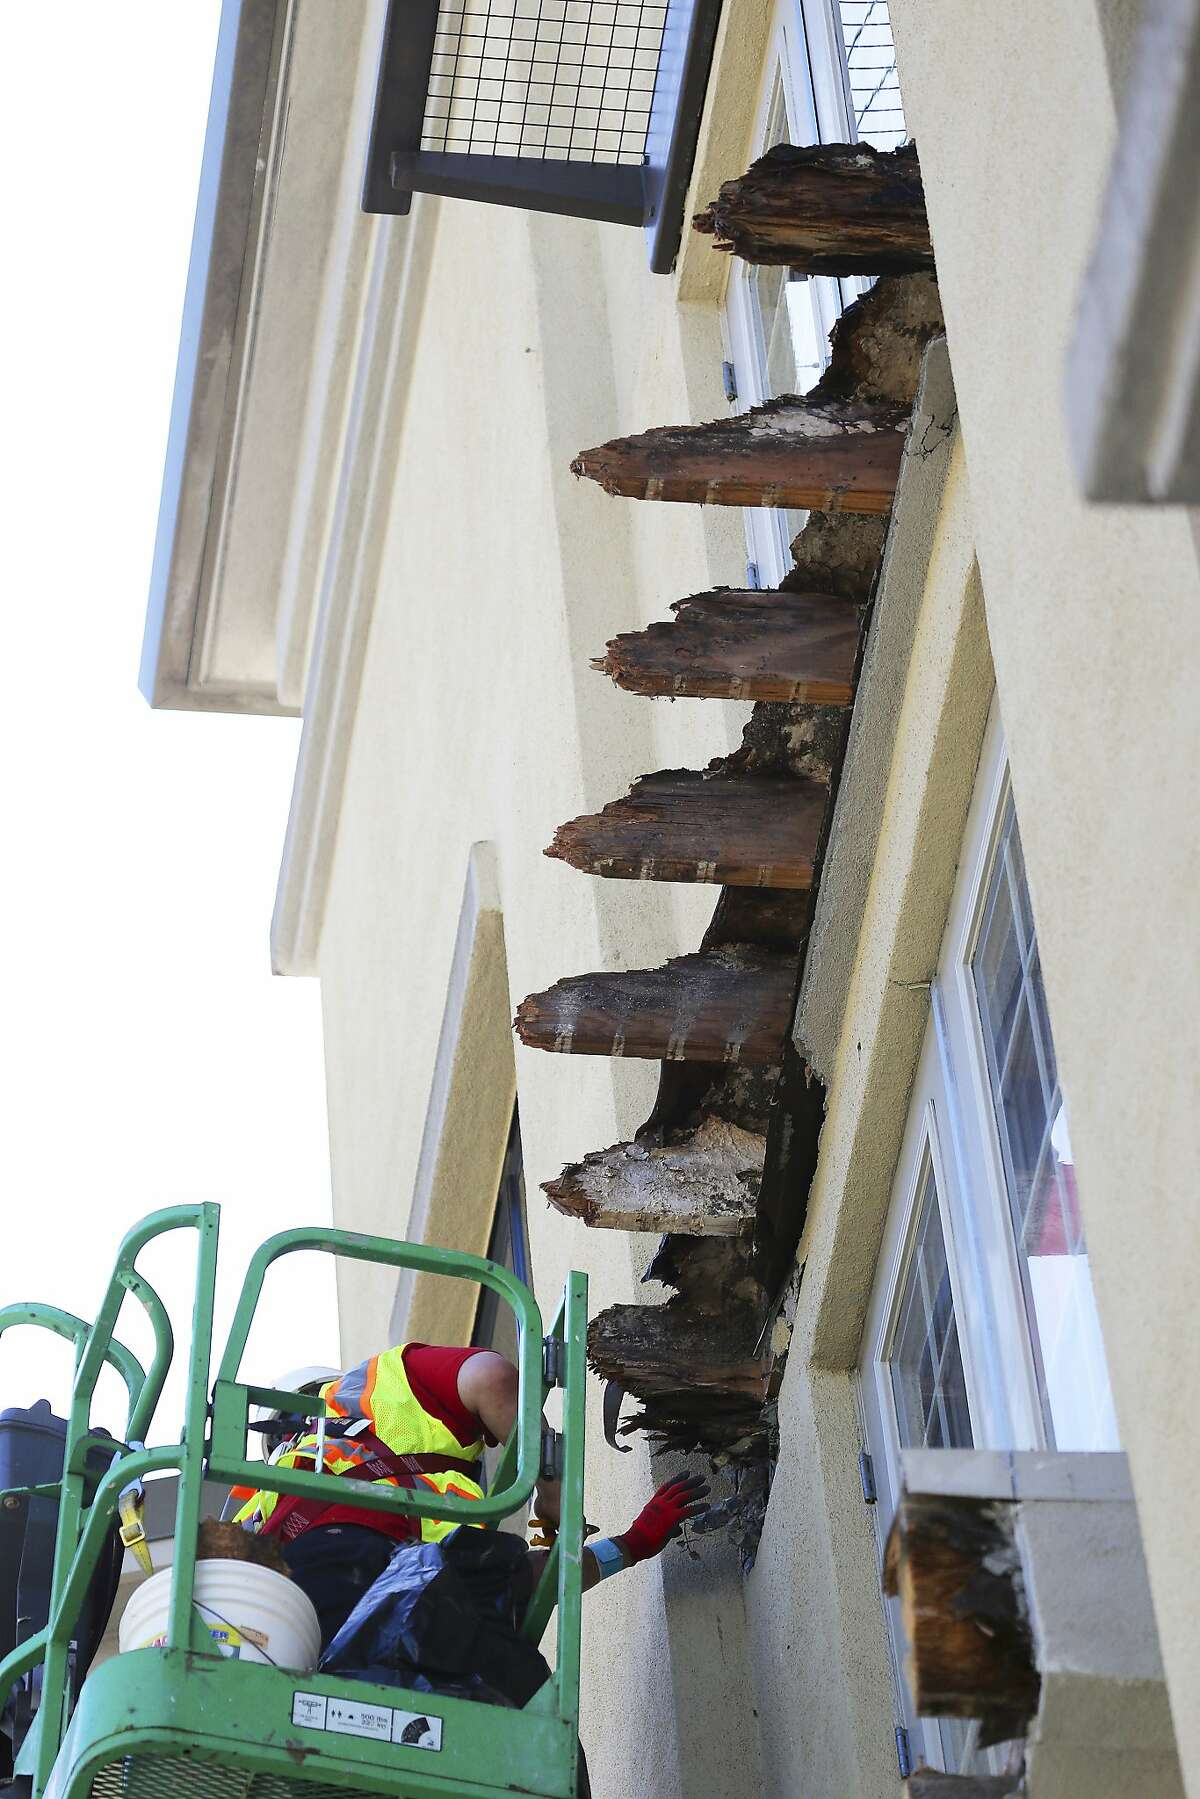 Workers looking at the broken joists of a fourth story balcony that collapsed and killed six Irish students onTuesday, at the Library Gardens Apartments in downtown Berkeley, Calif., June 18, 2015. Two independent engineers have said they had seen what they considered clear evidence that the balcony that fell in Berkeley was ridden with dry rot and decay. (Jim Wilson/The New York Times)